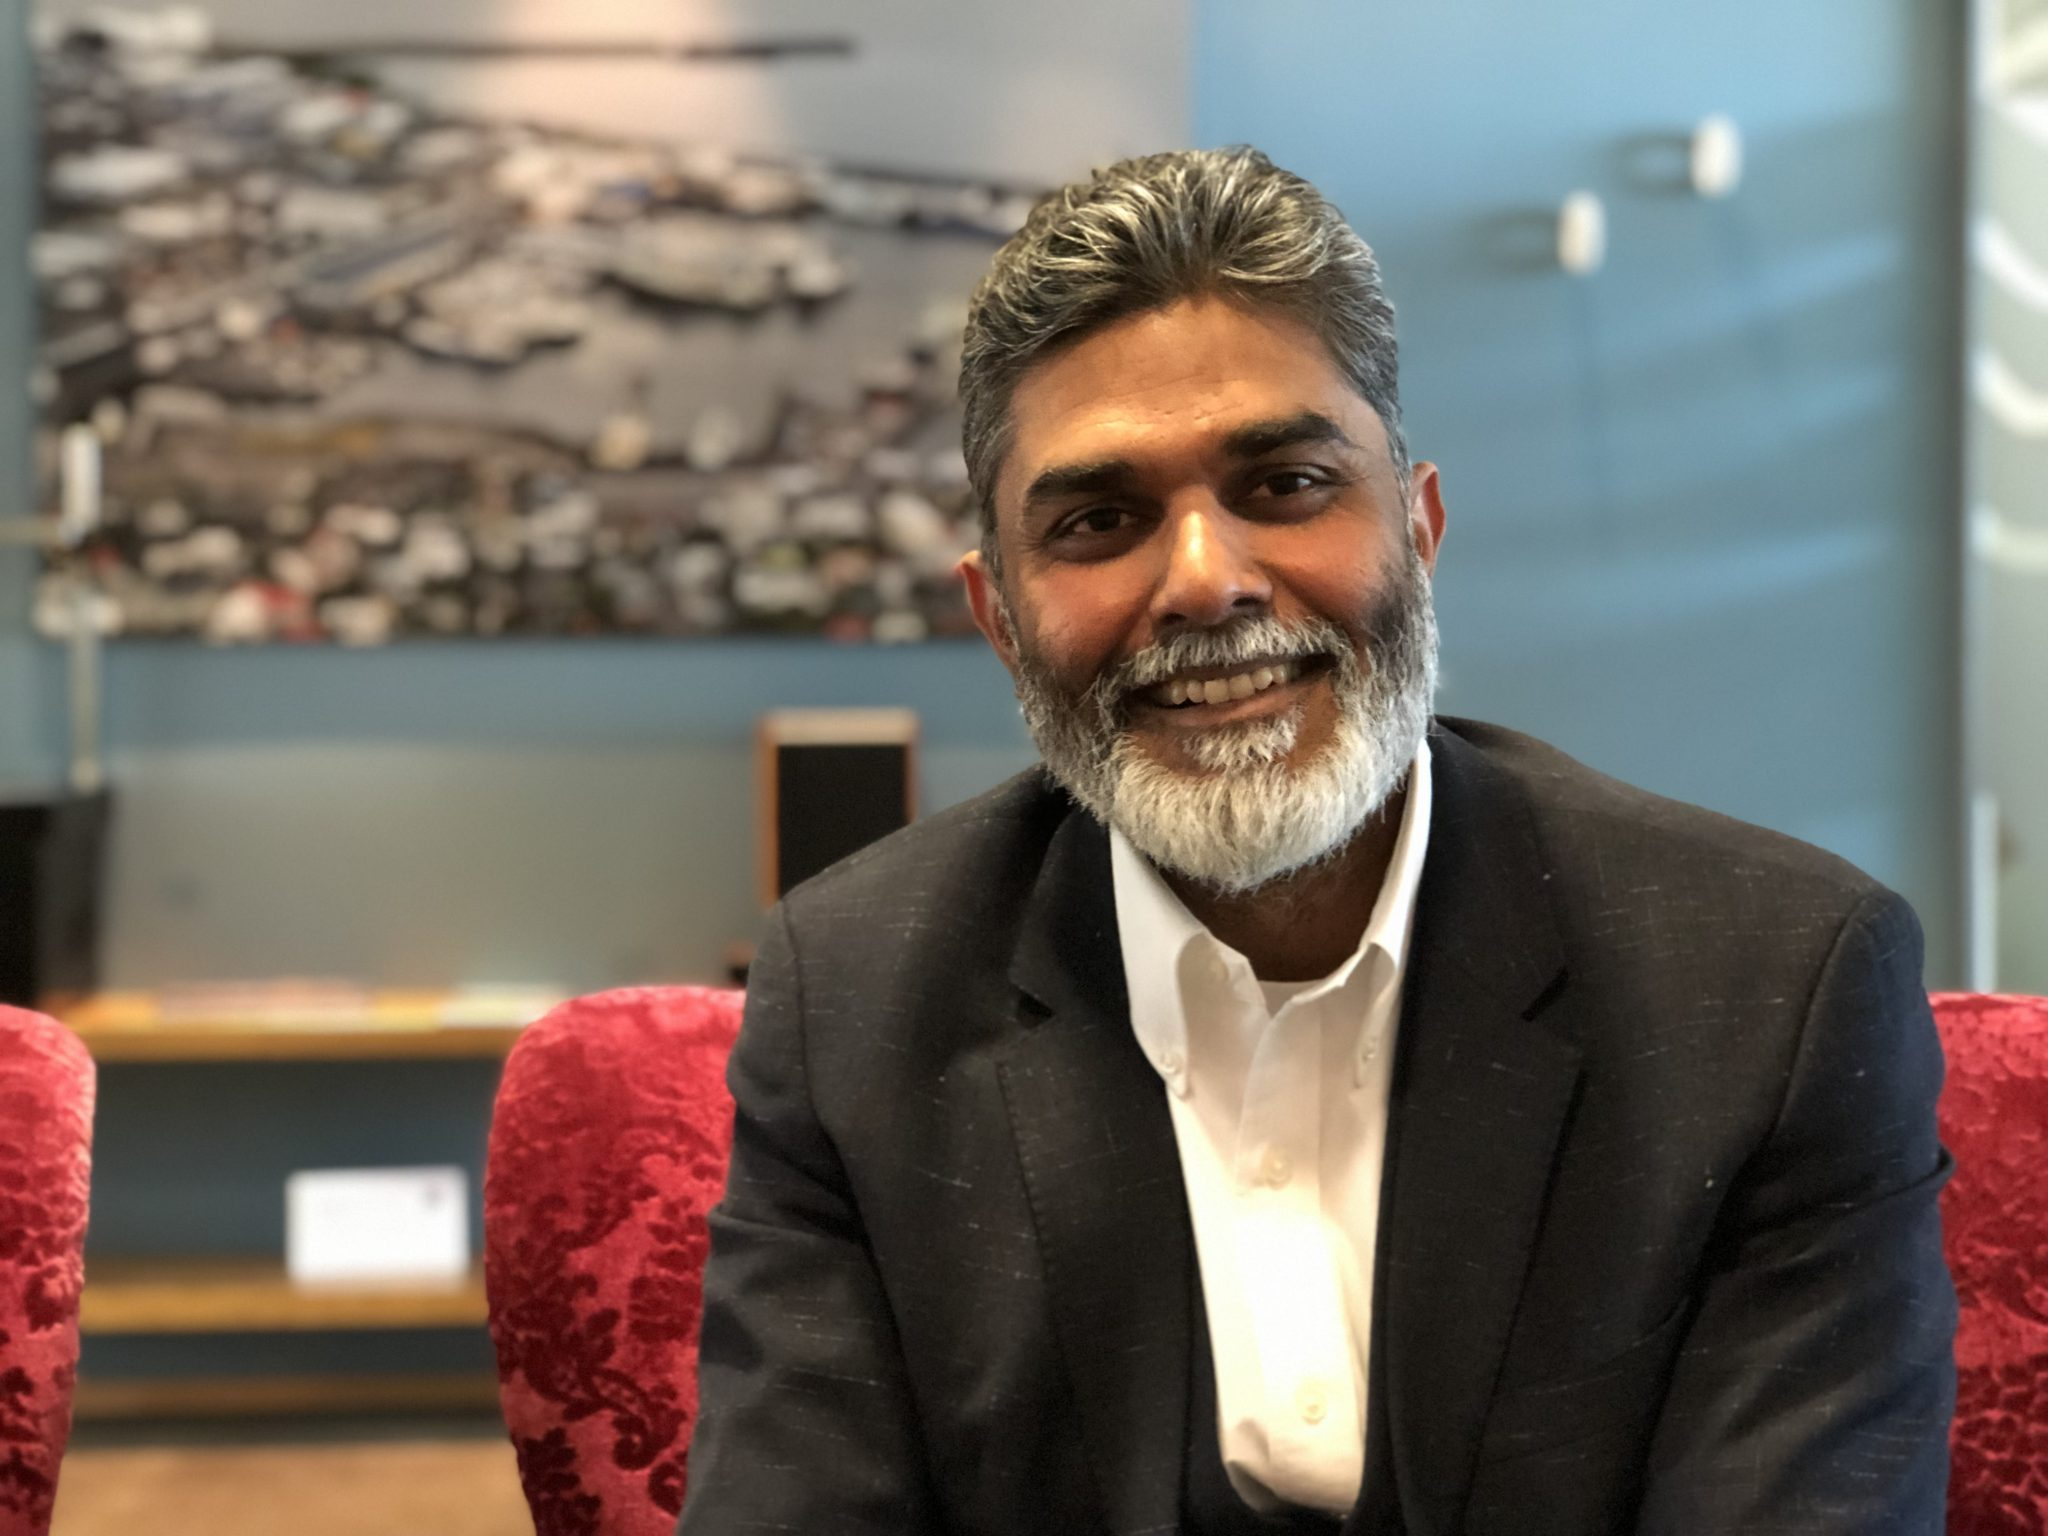 Image of Bala Kamallakharan, a consultant who's helped build the tech scene for Icelandic Startups for the past decade